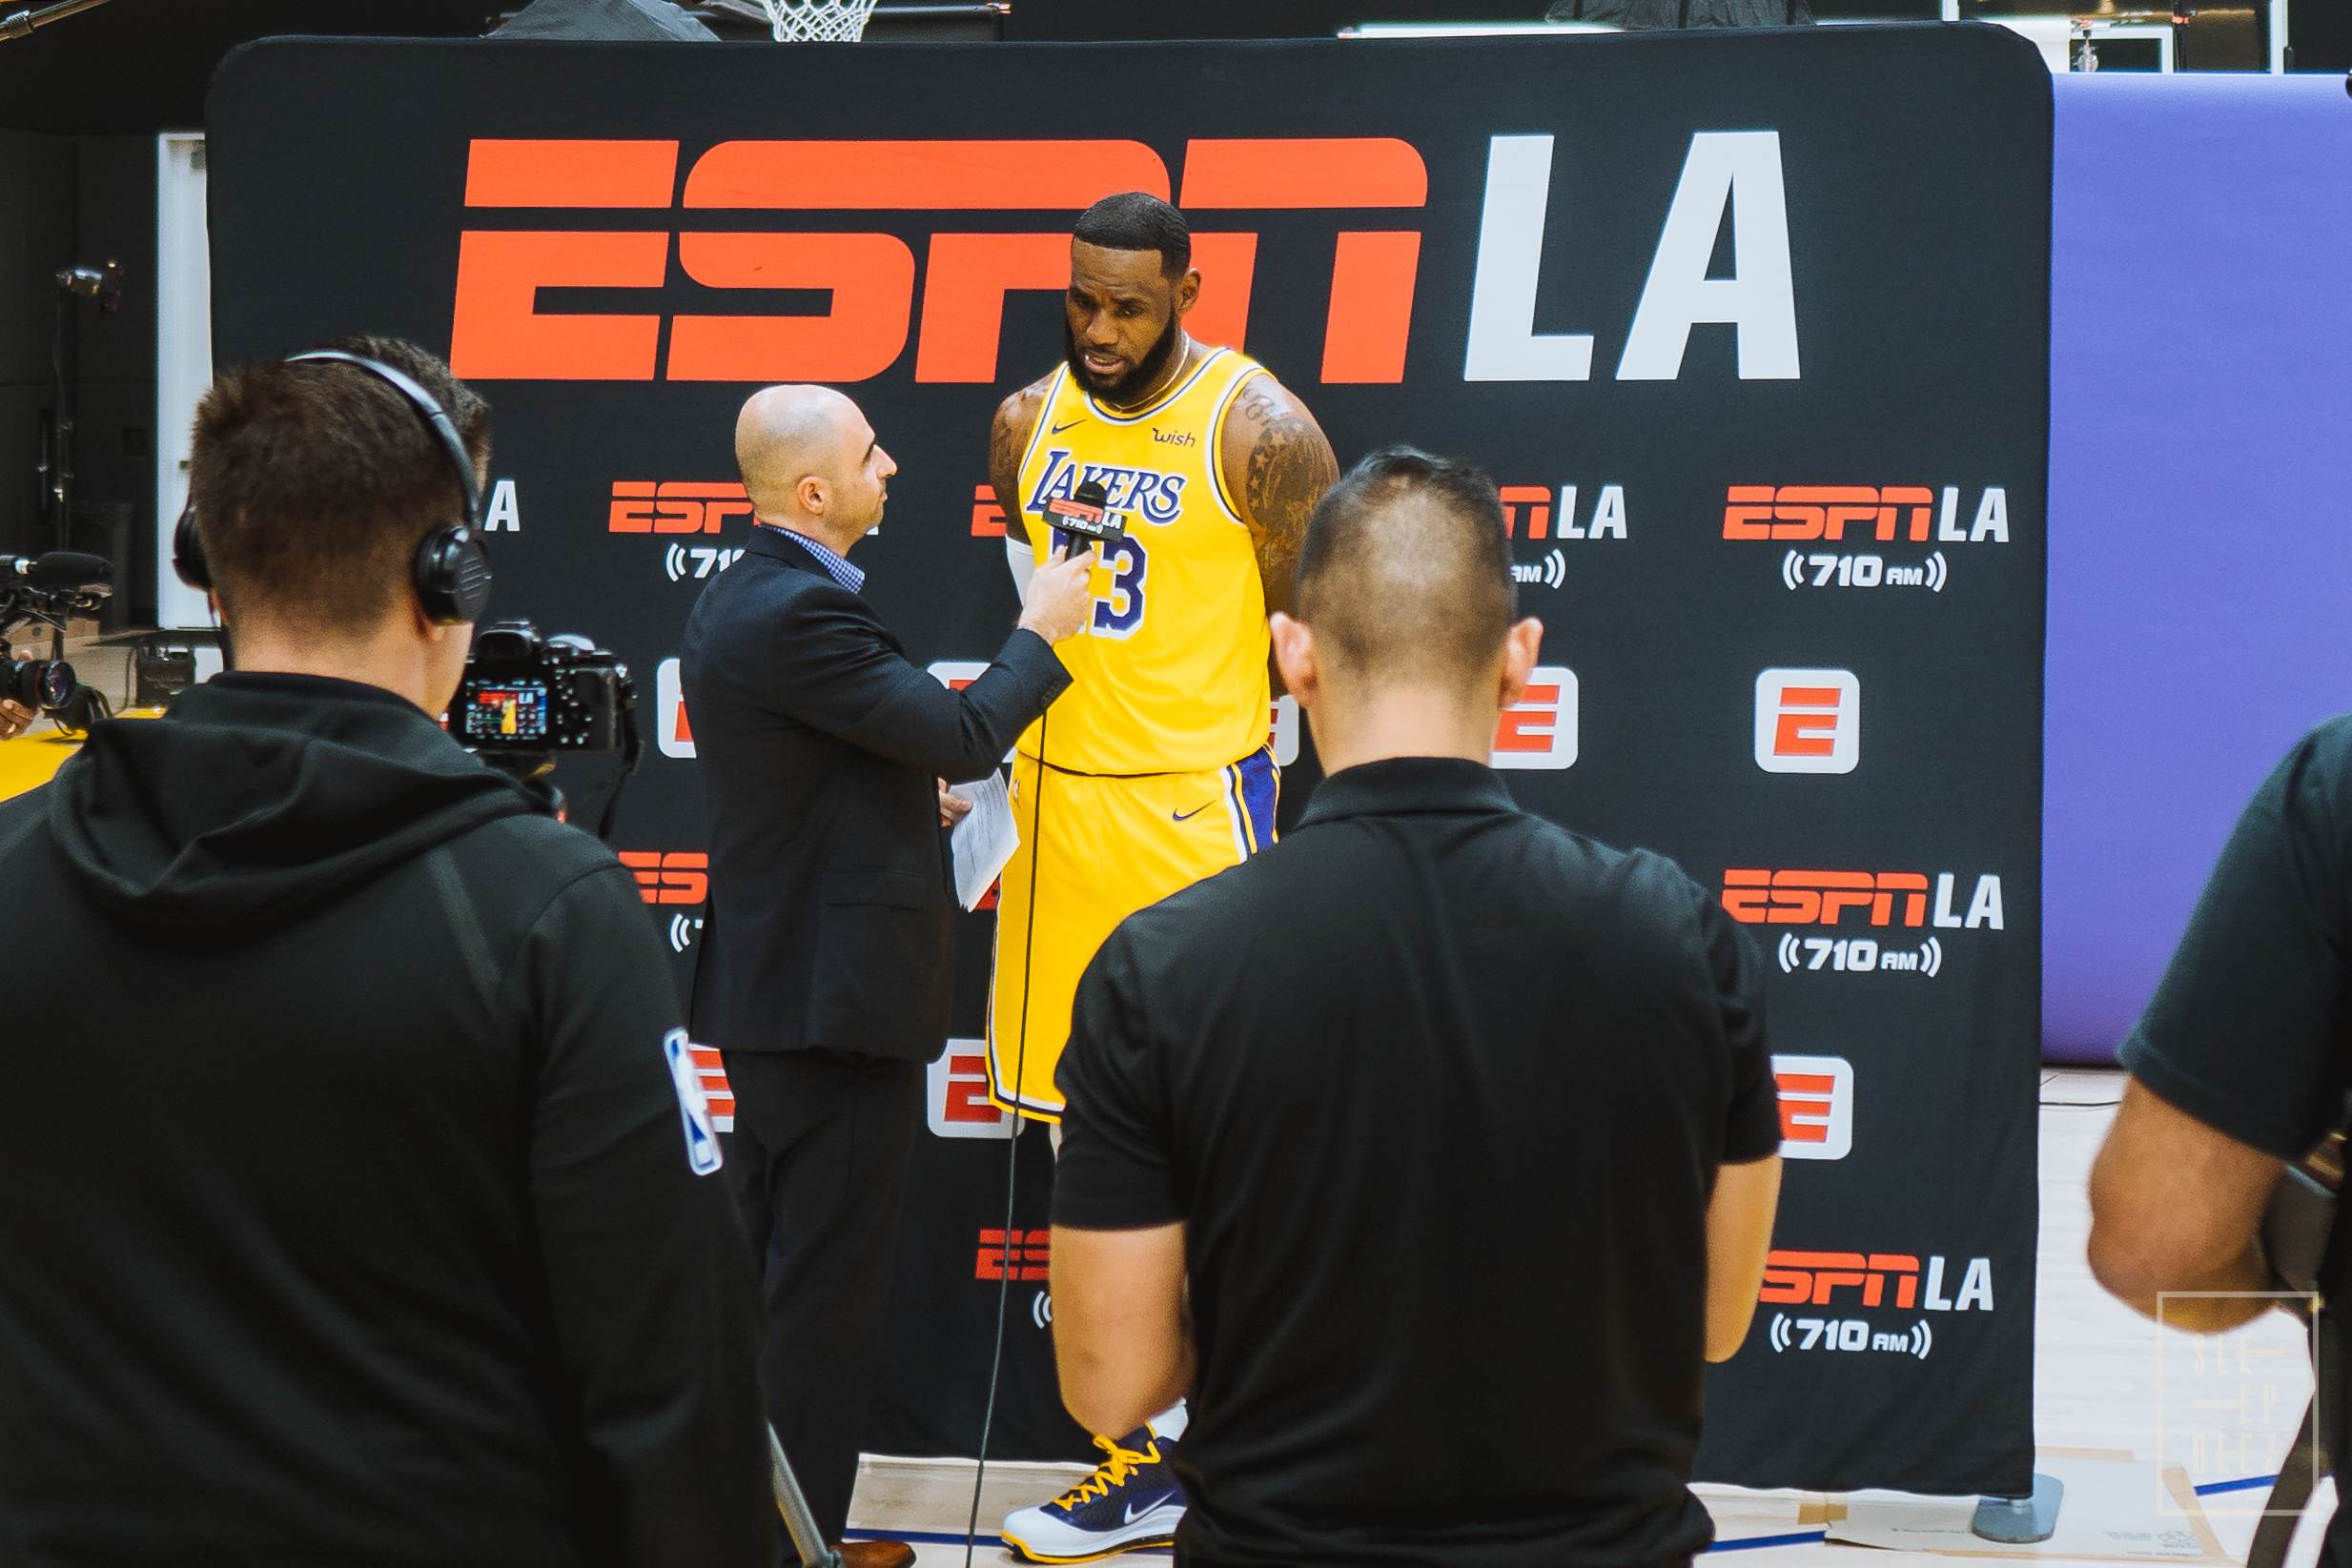 Lakers LeBron James being interviewed by ESPN LA 710am during Media Day. (Photo Credit: @Sleepvision)